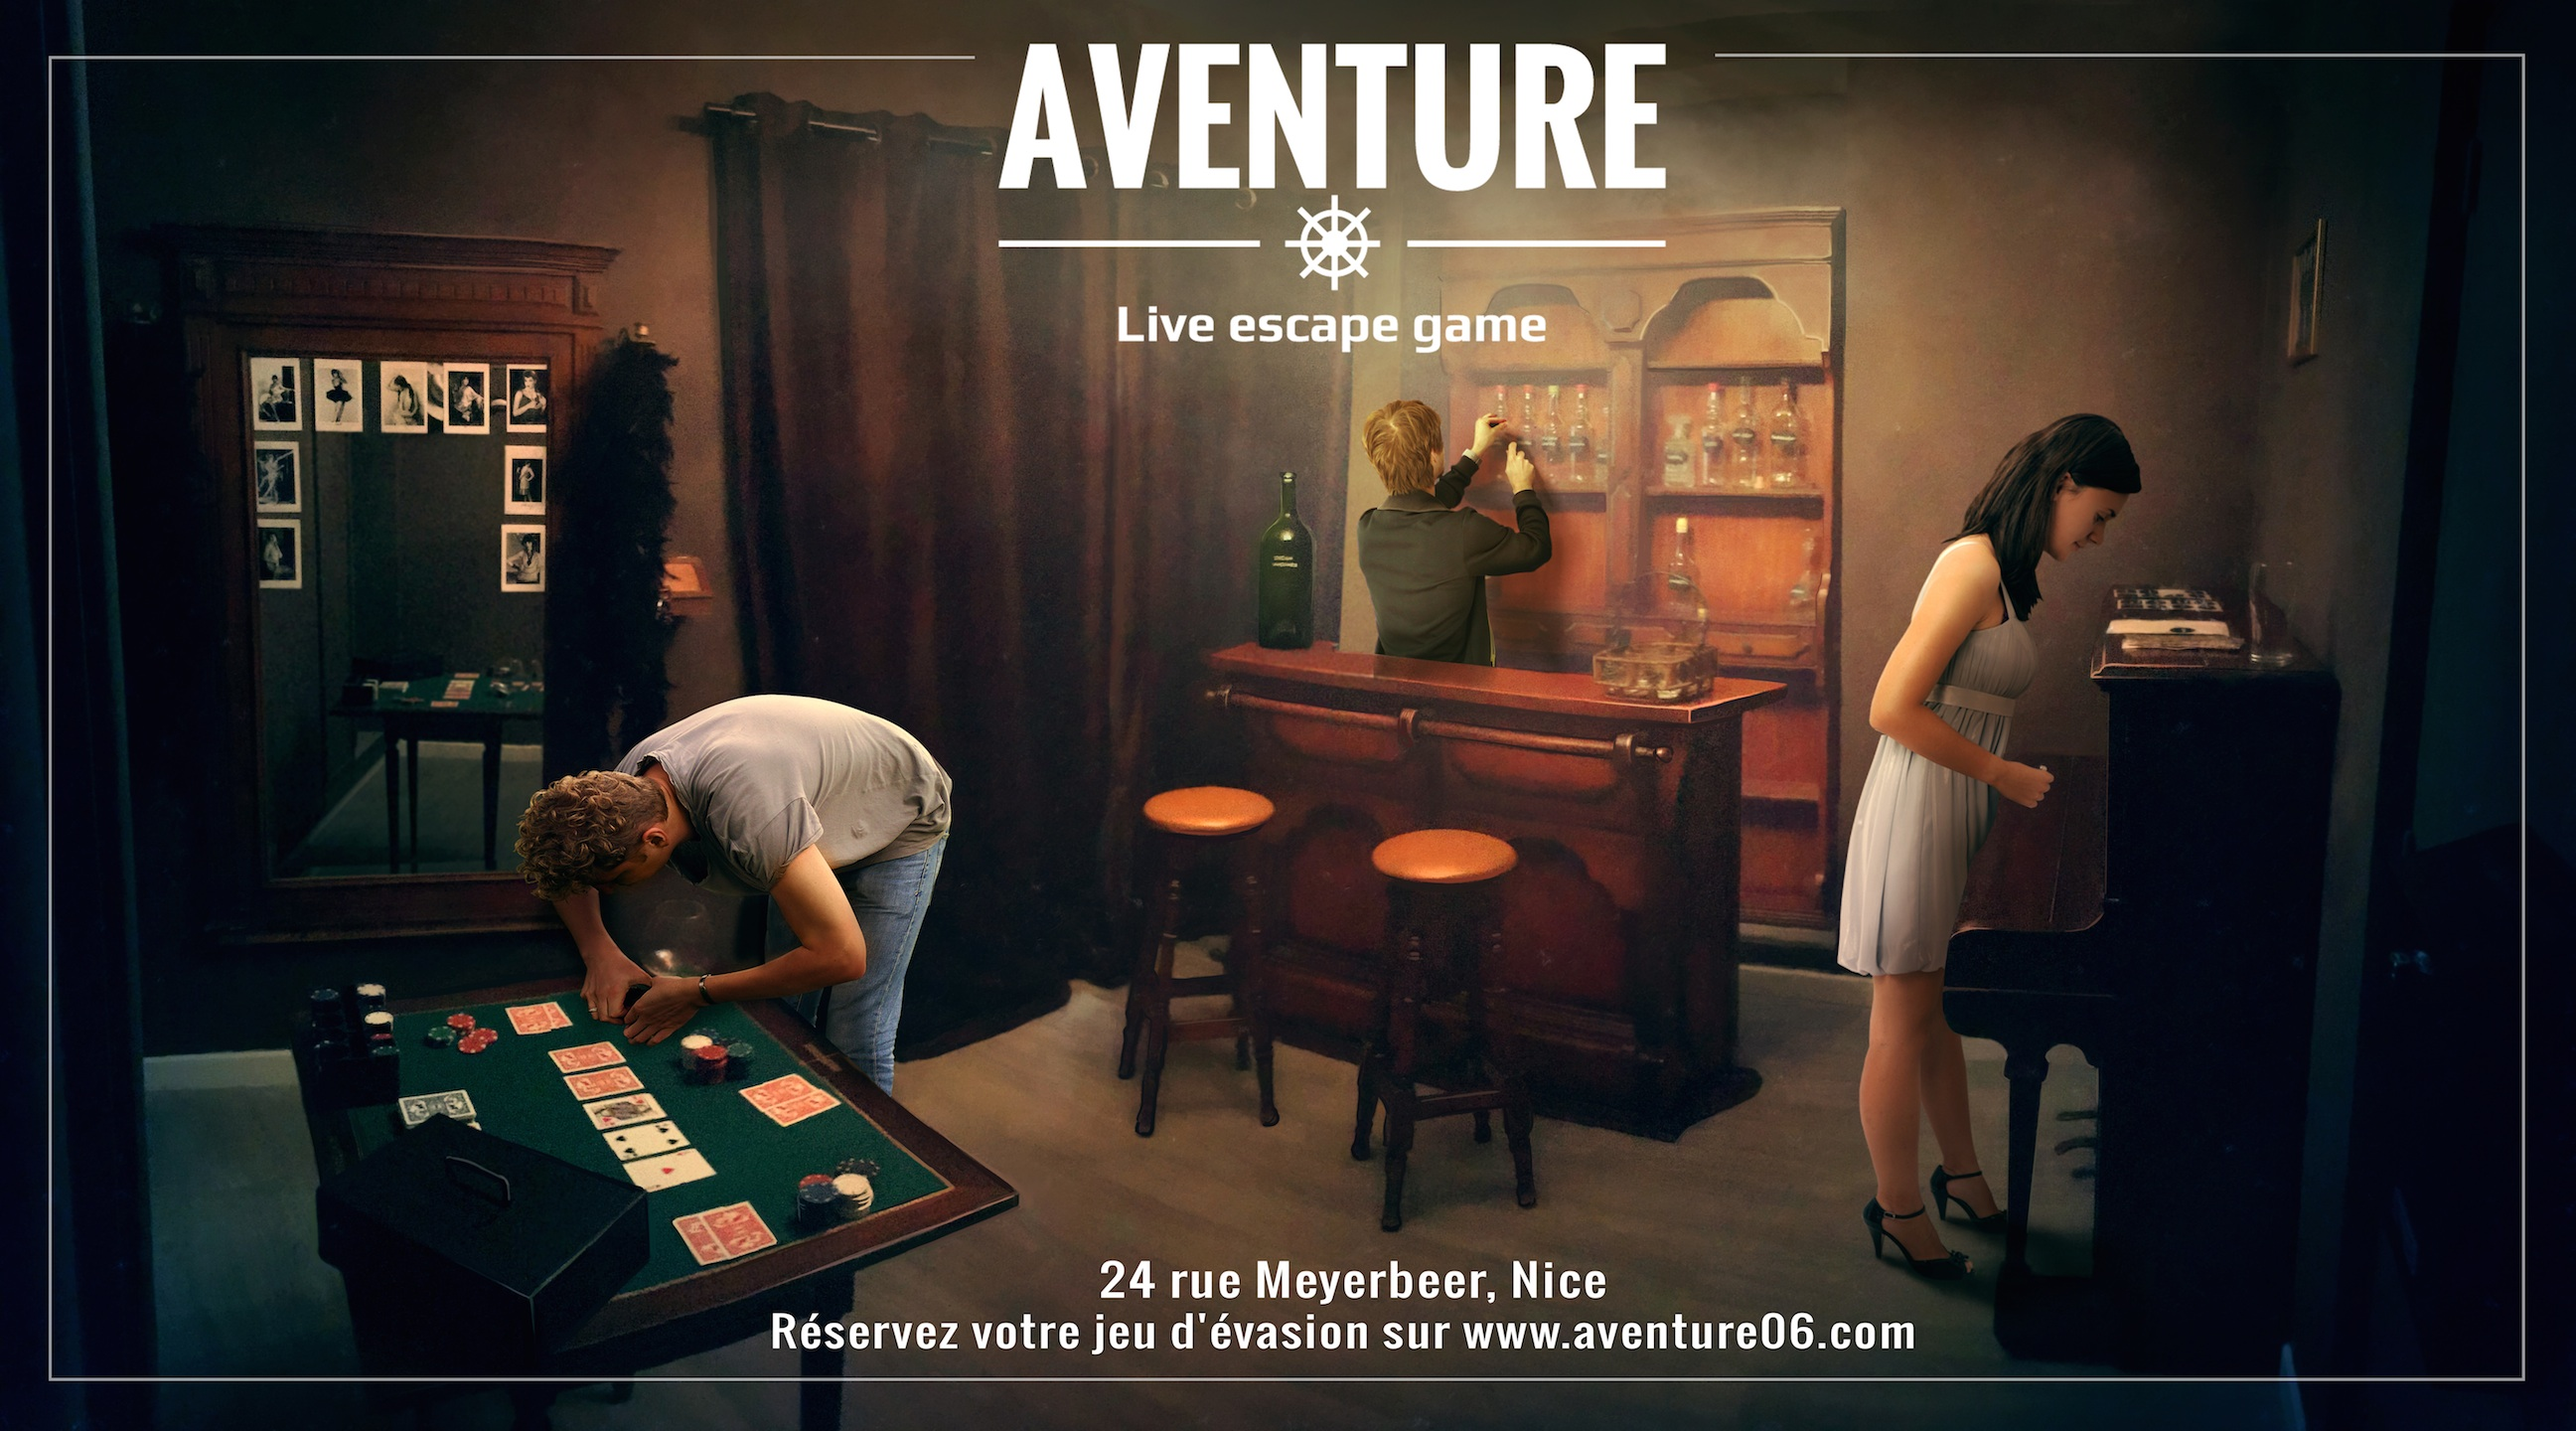 aventure nice la carte des escape game. Black Bedroom Furniture Sets. Home Design Ideas